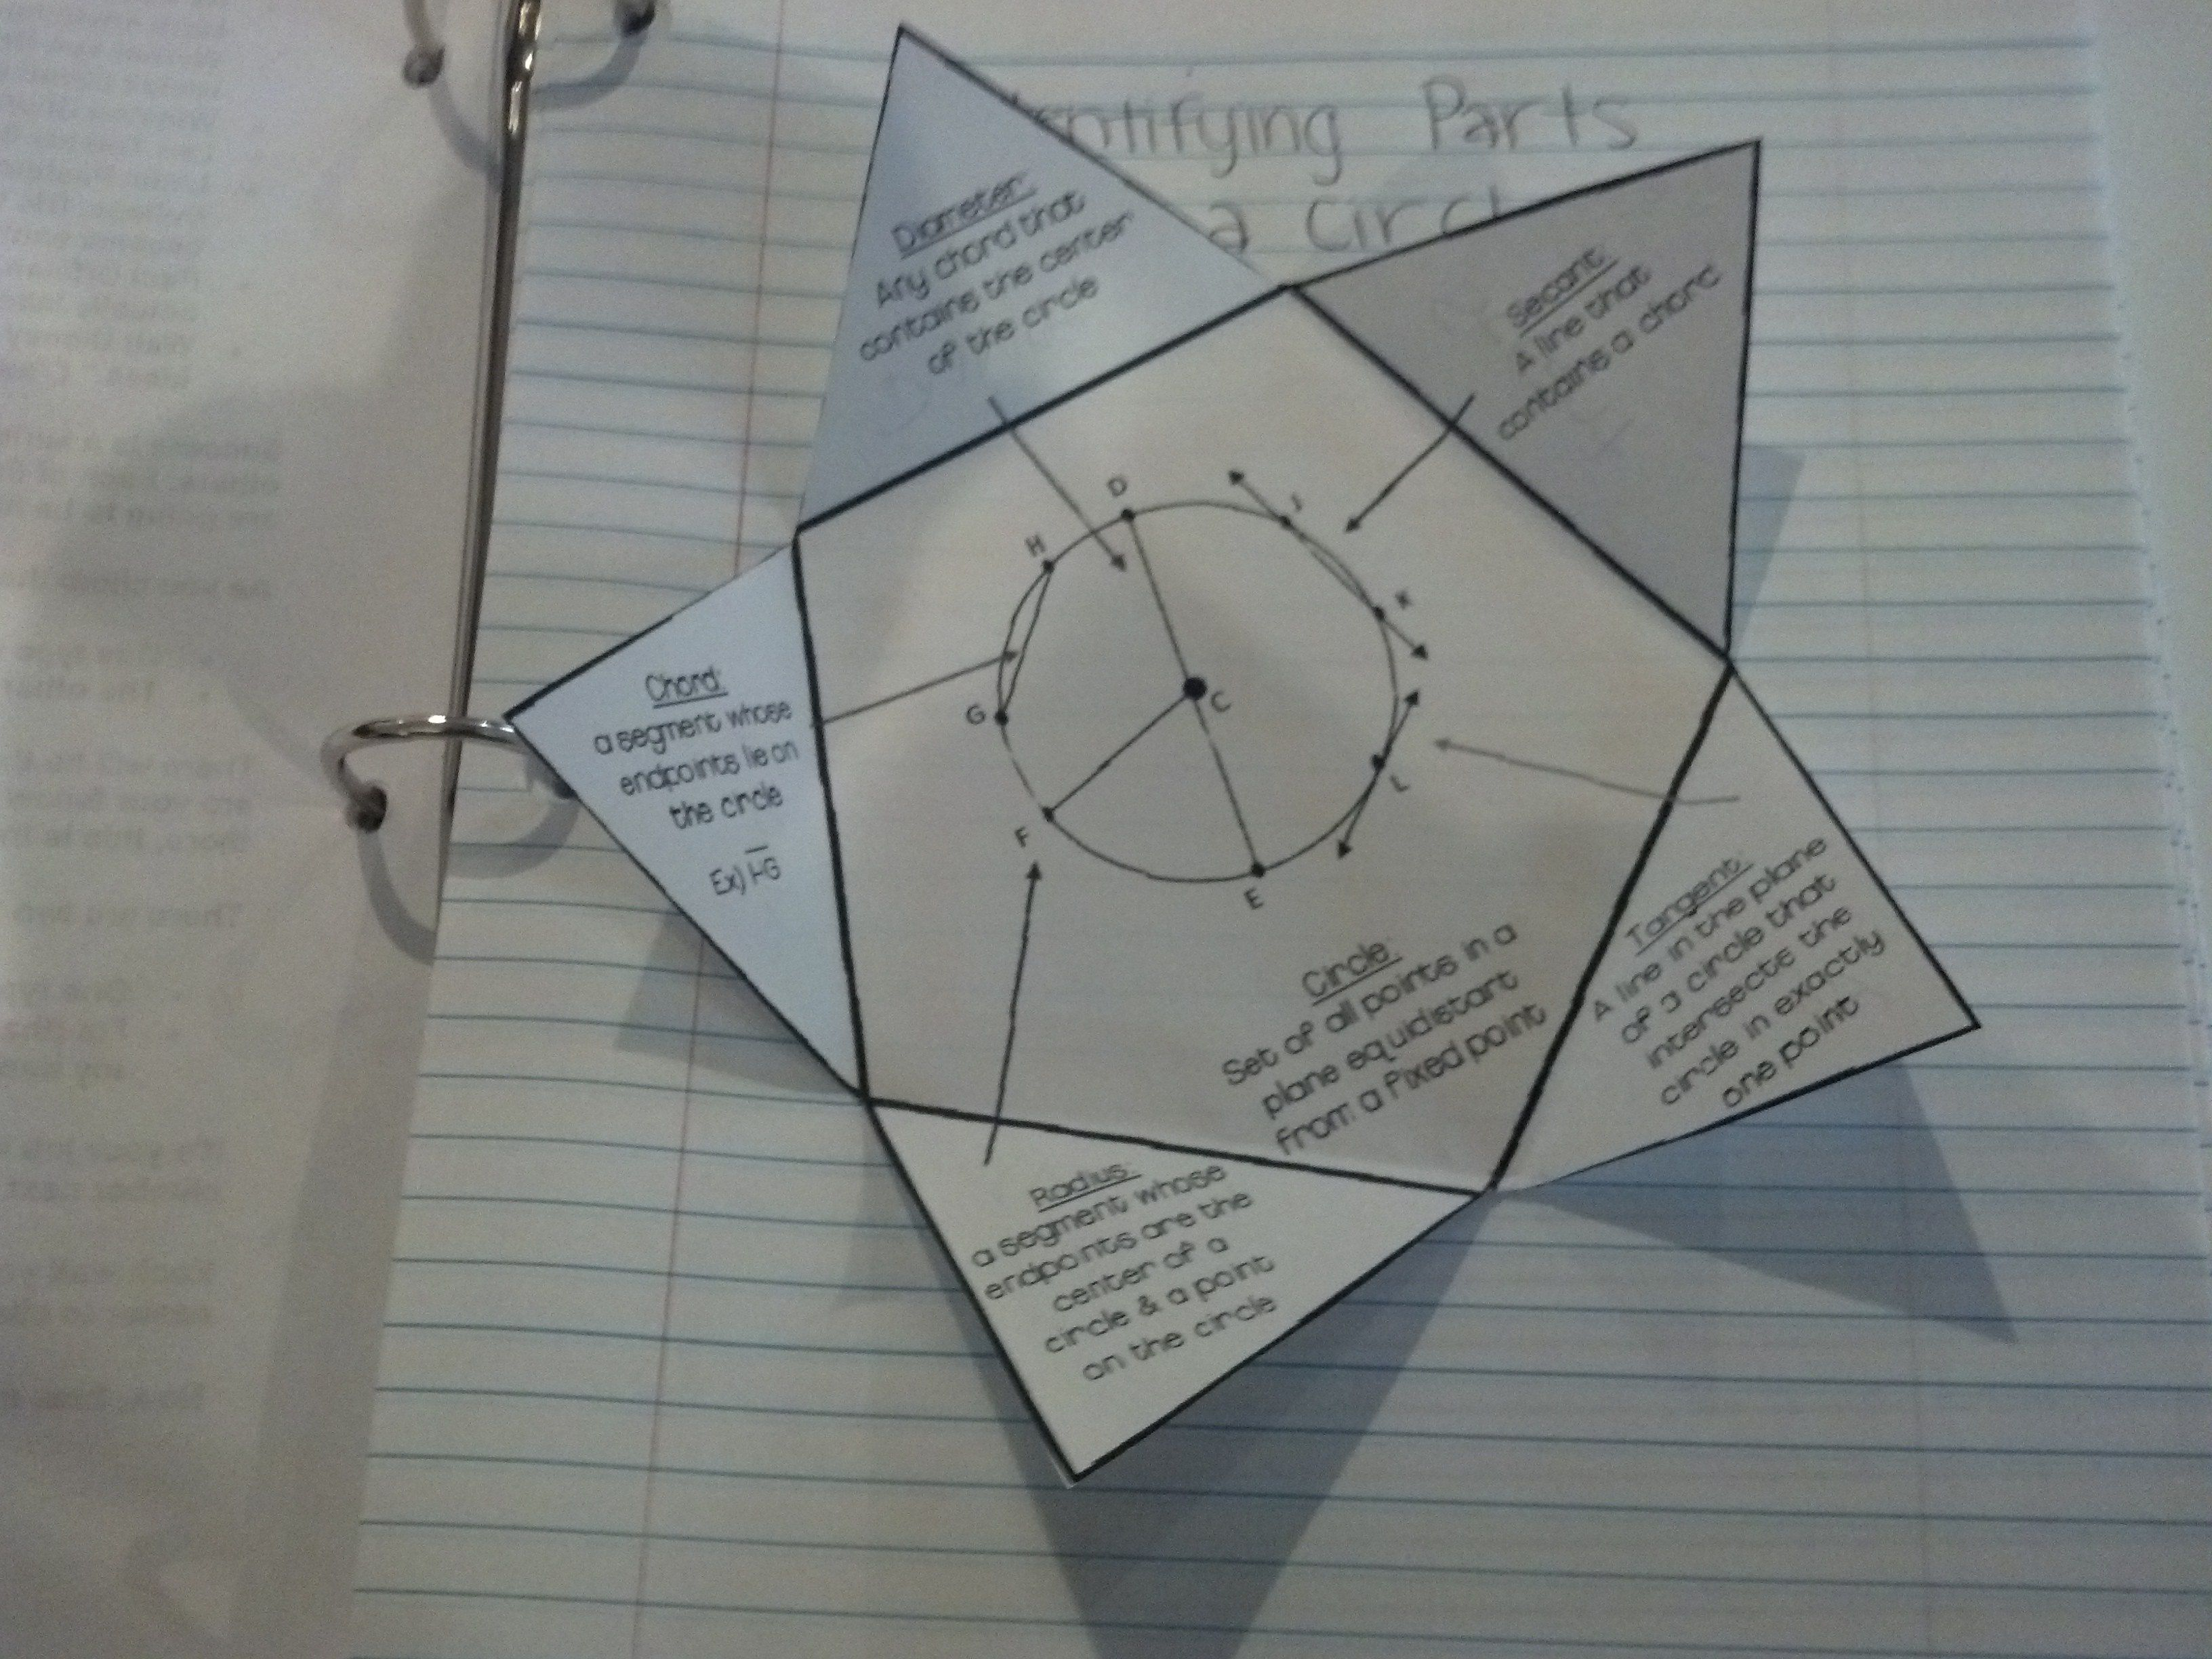 Identifying Parts Of A Circle Secant Tangent Chord Task Cards Amp Folding Organizer